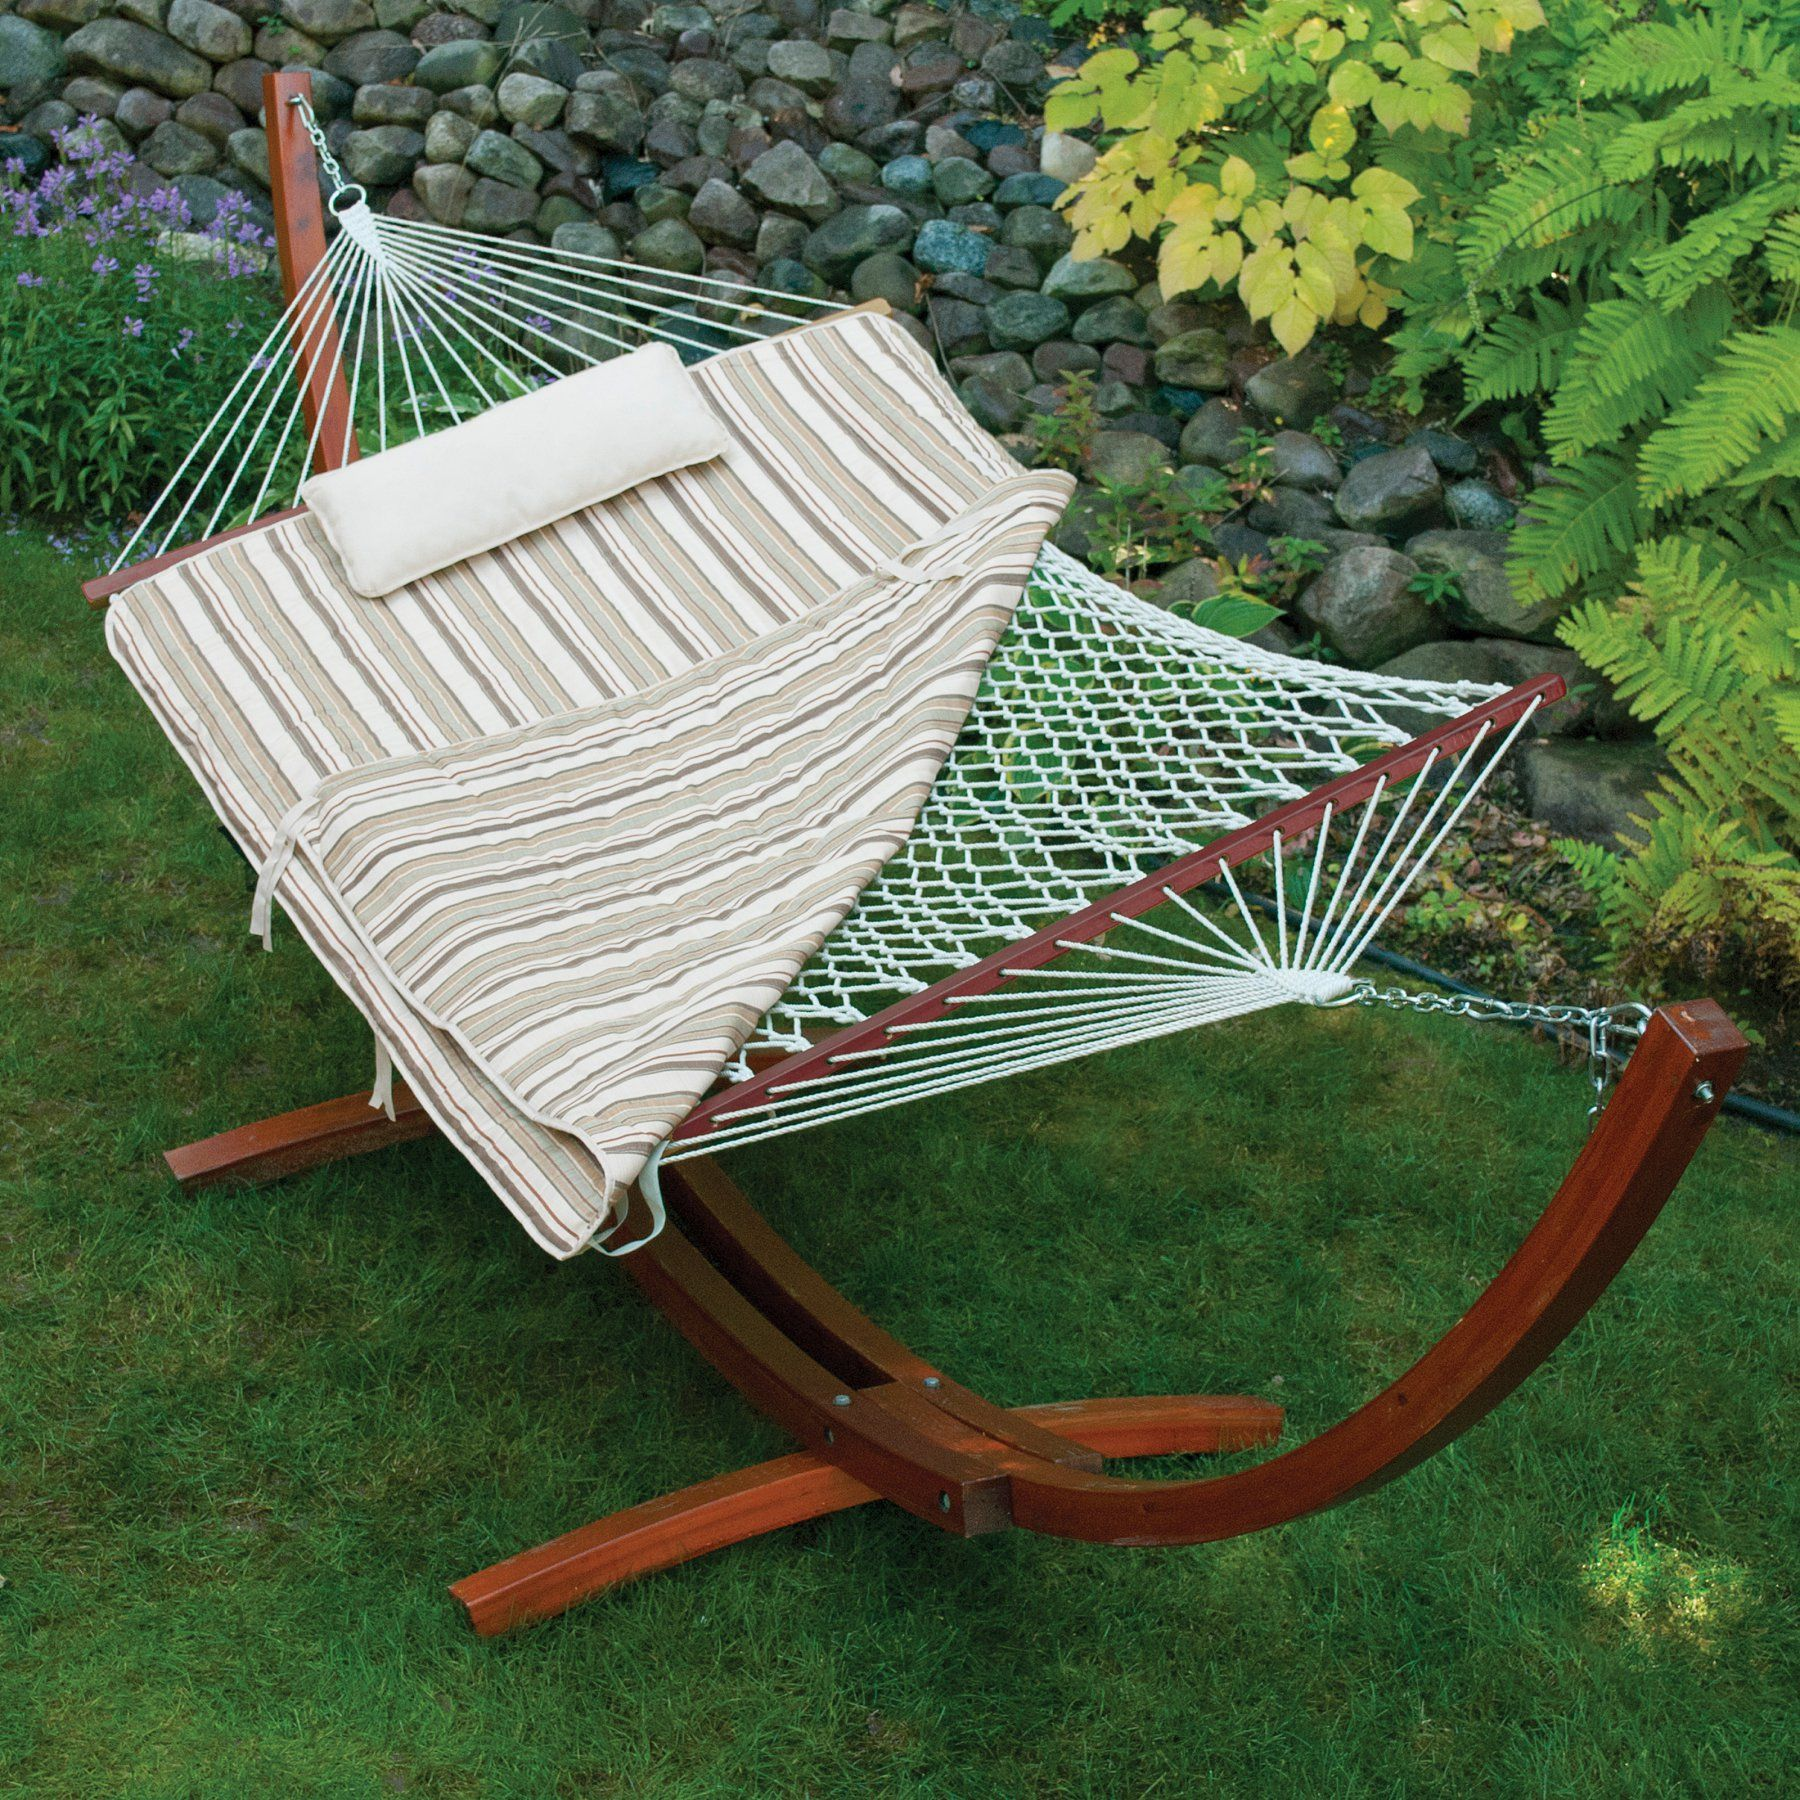 Island bay ft cotton rope hammock with wood stand pillow and